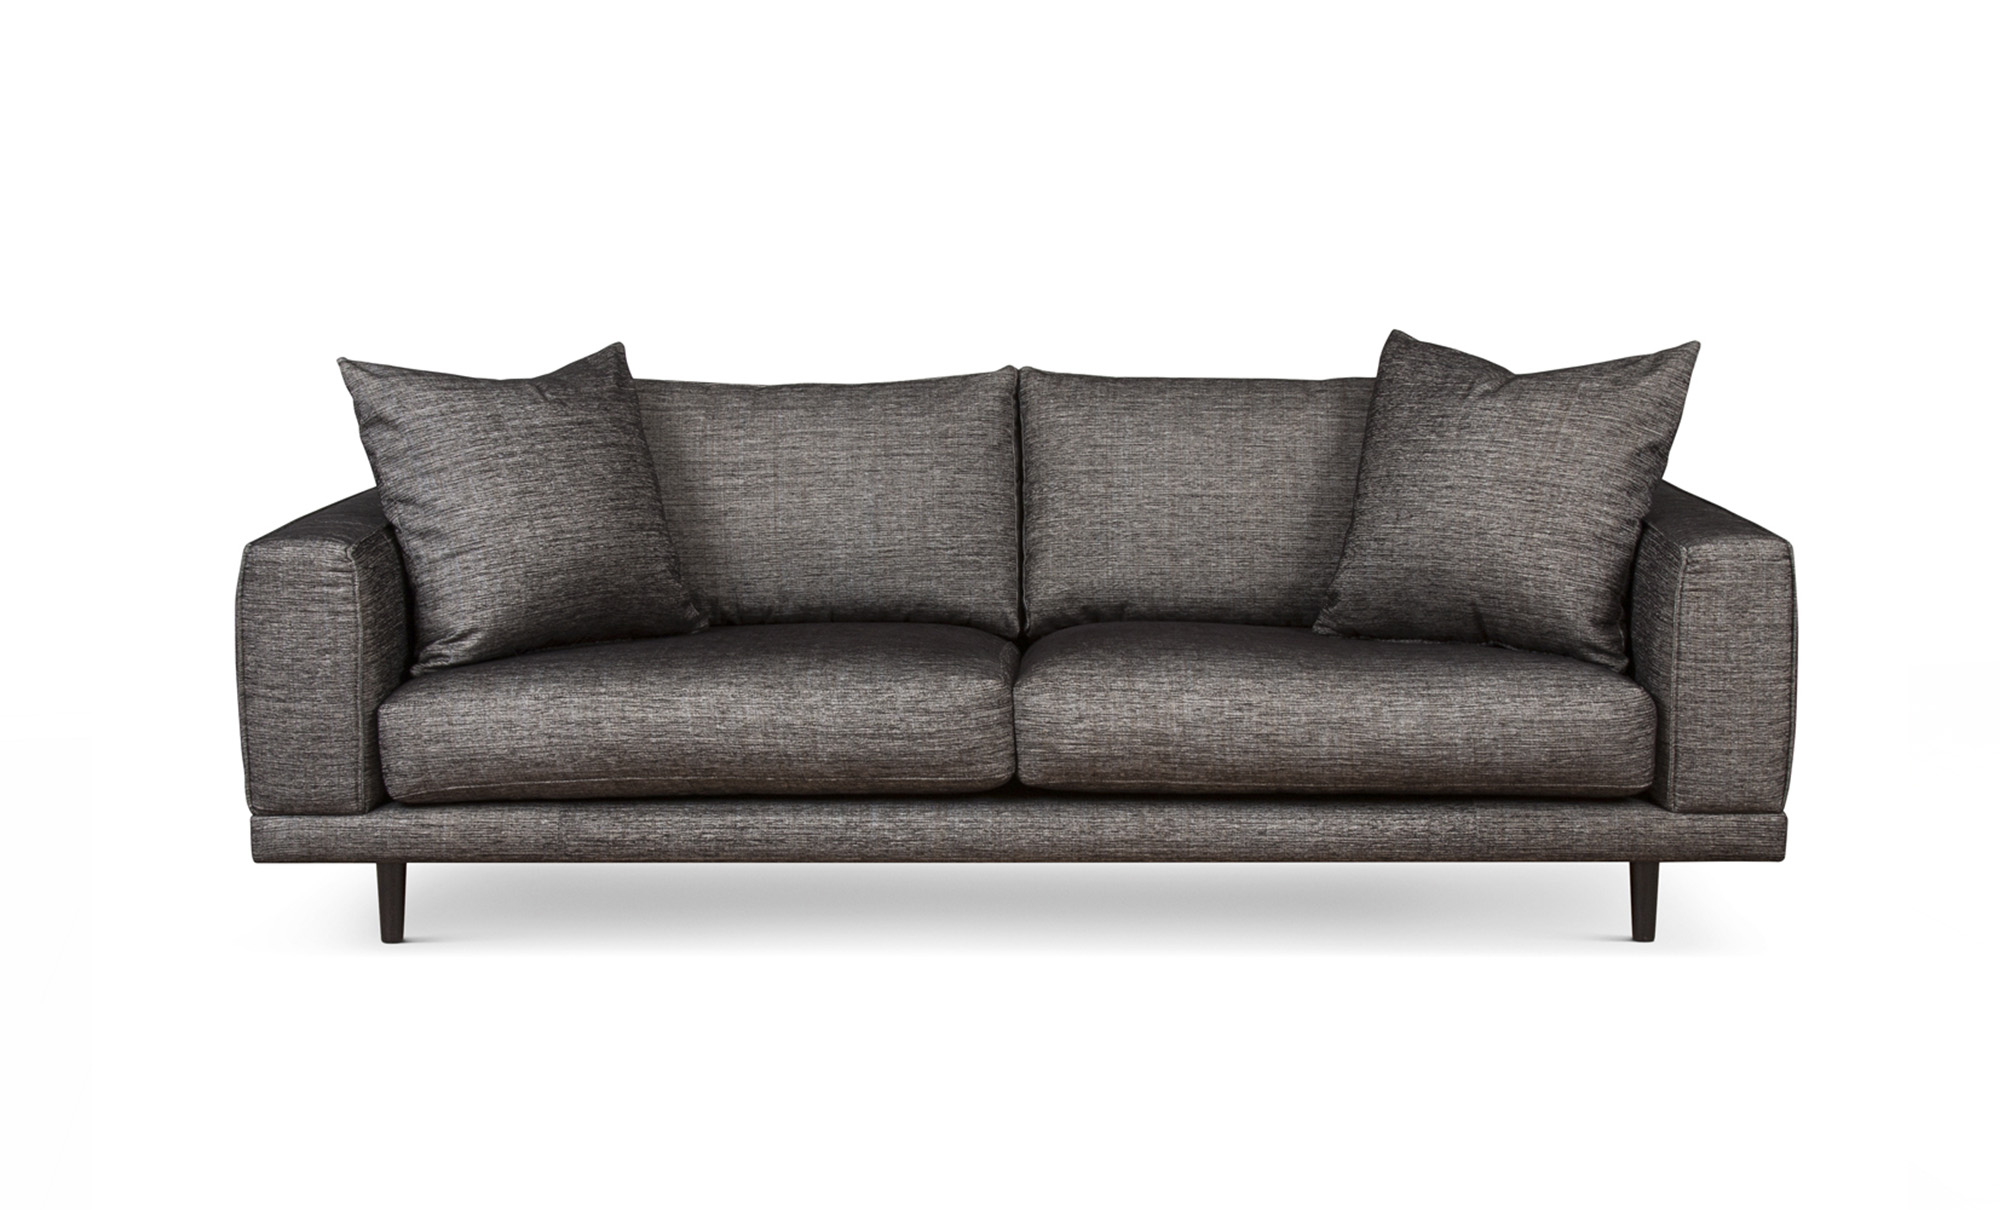 charlie sofa interior define handy living convert a couch sleeper 2 fanuli furniture